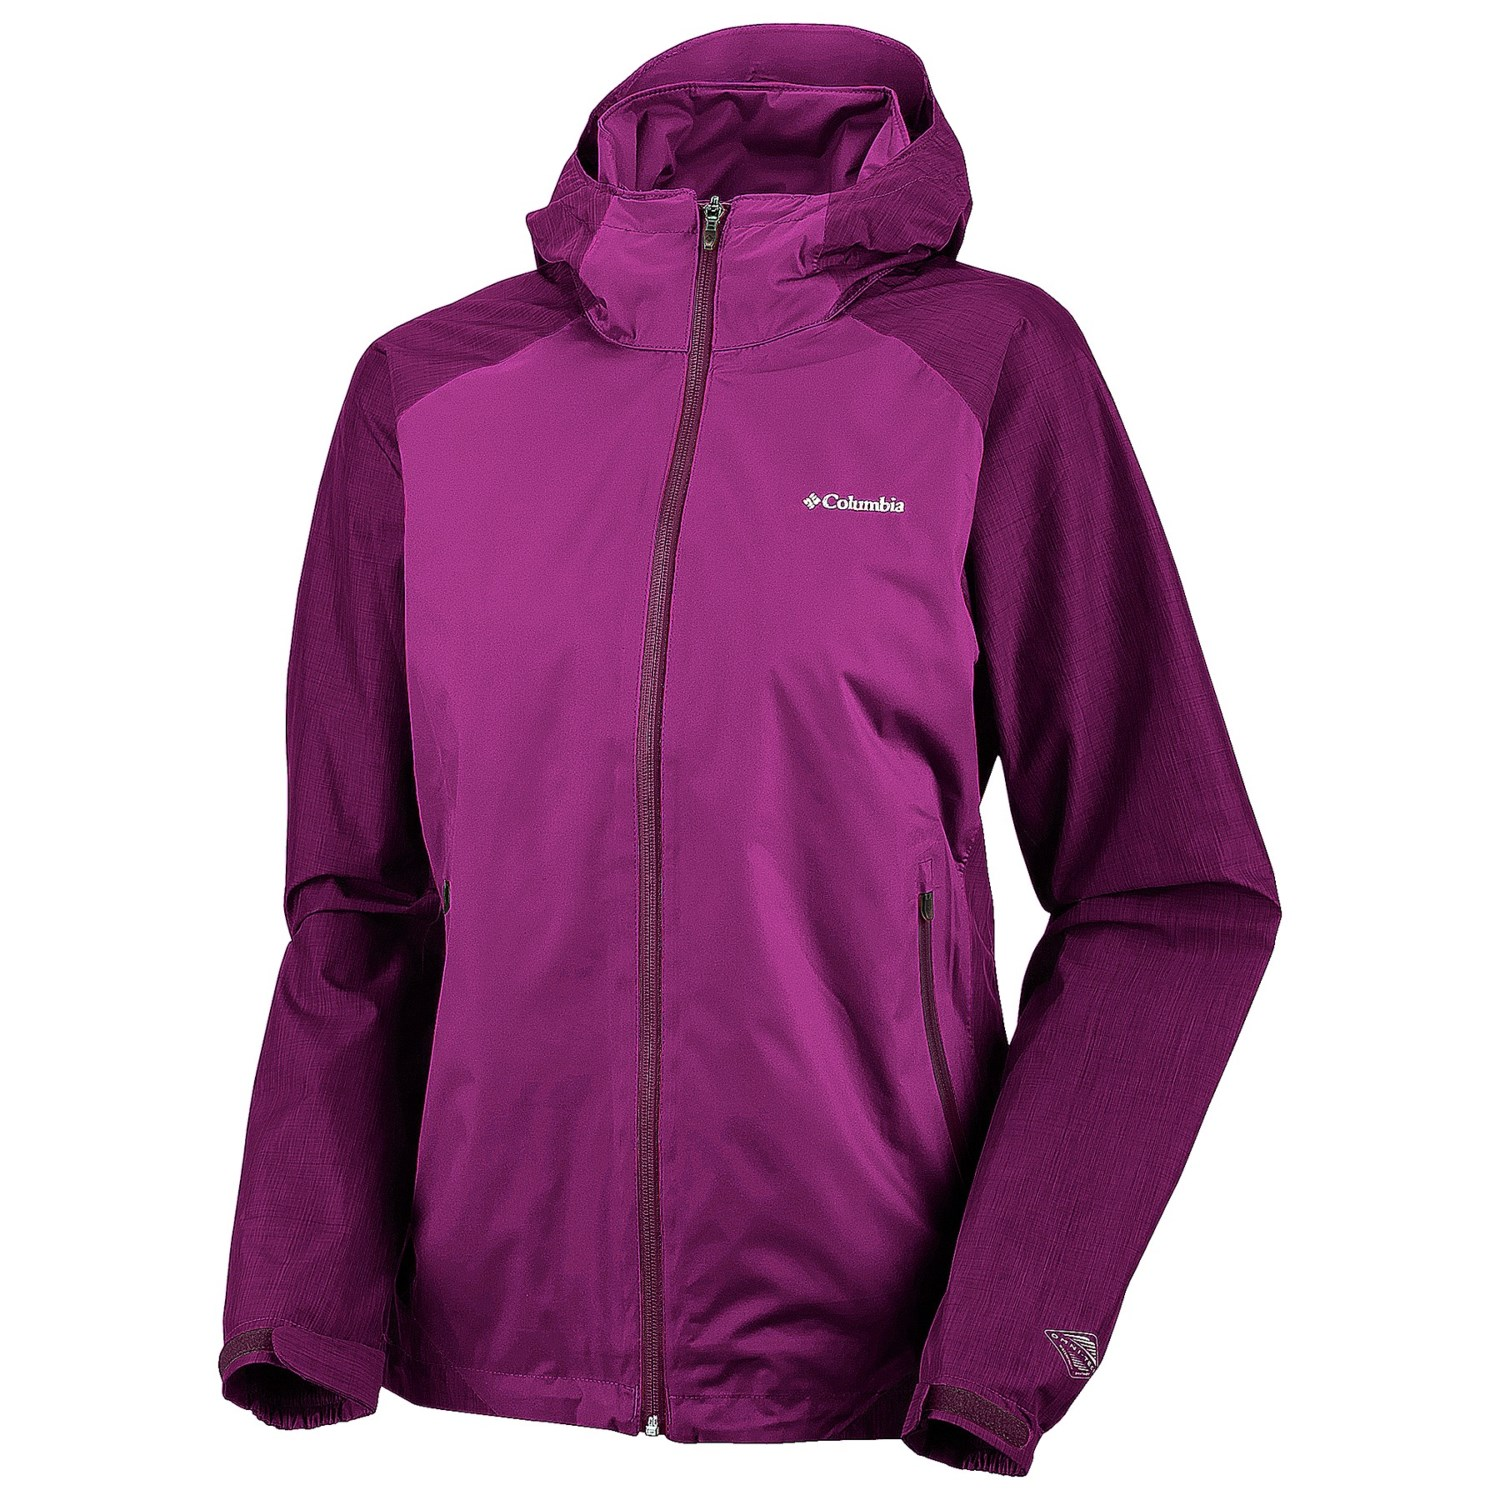 Columbia Tested Tough In Pink Mighty Lite II Womens Jacket 2013